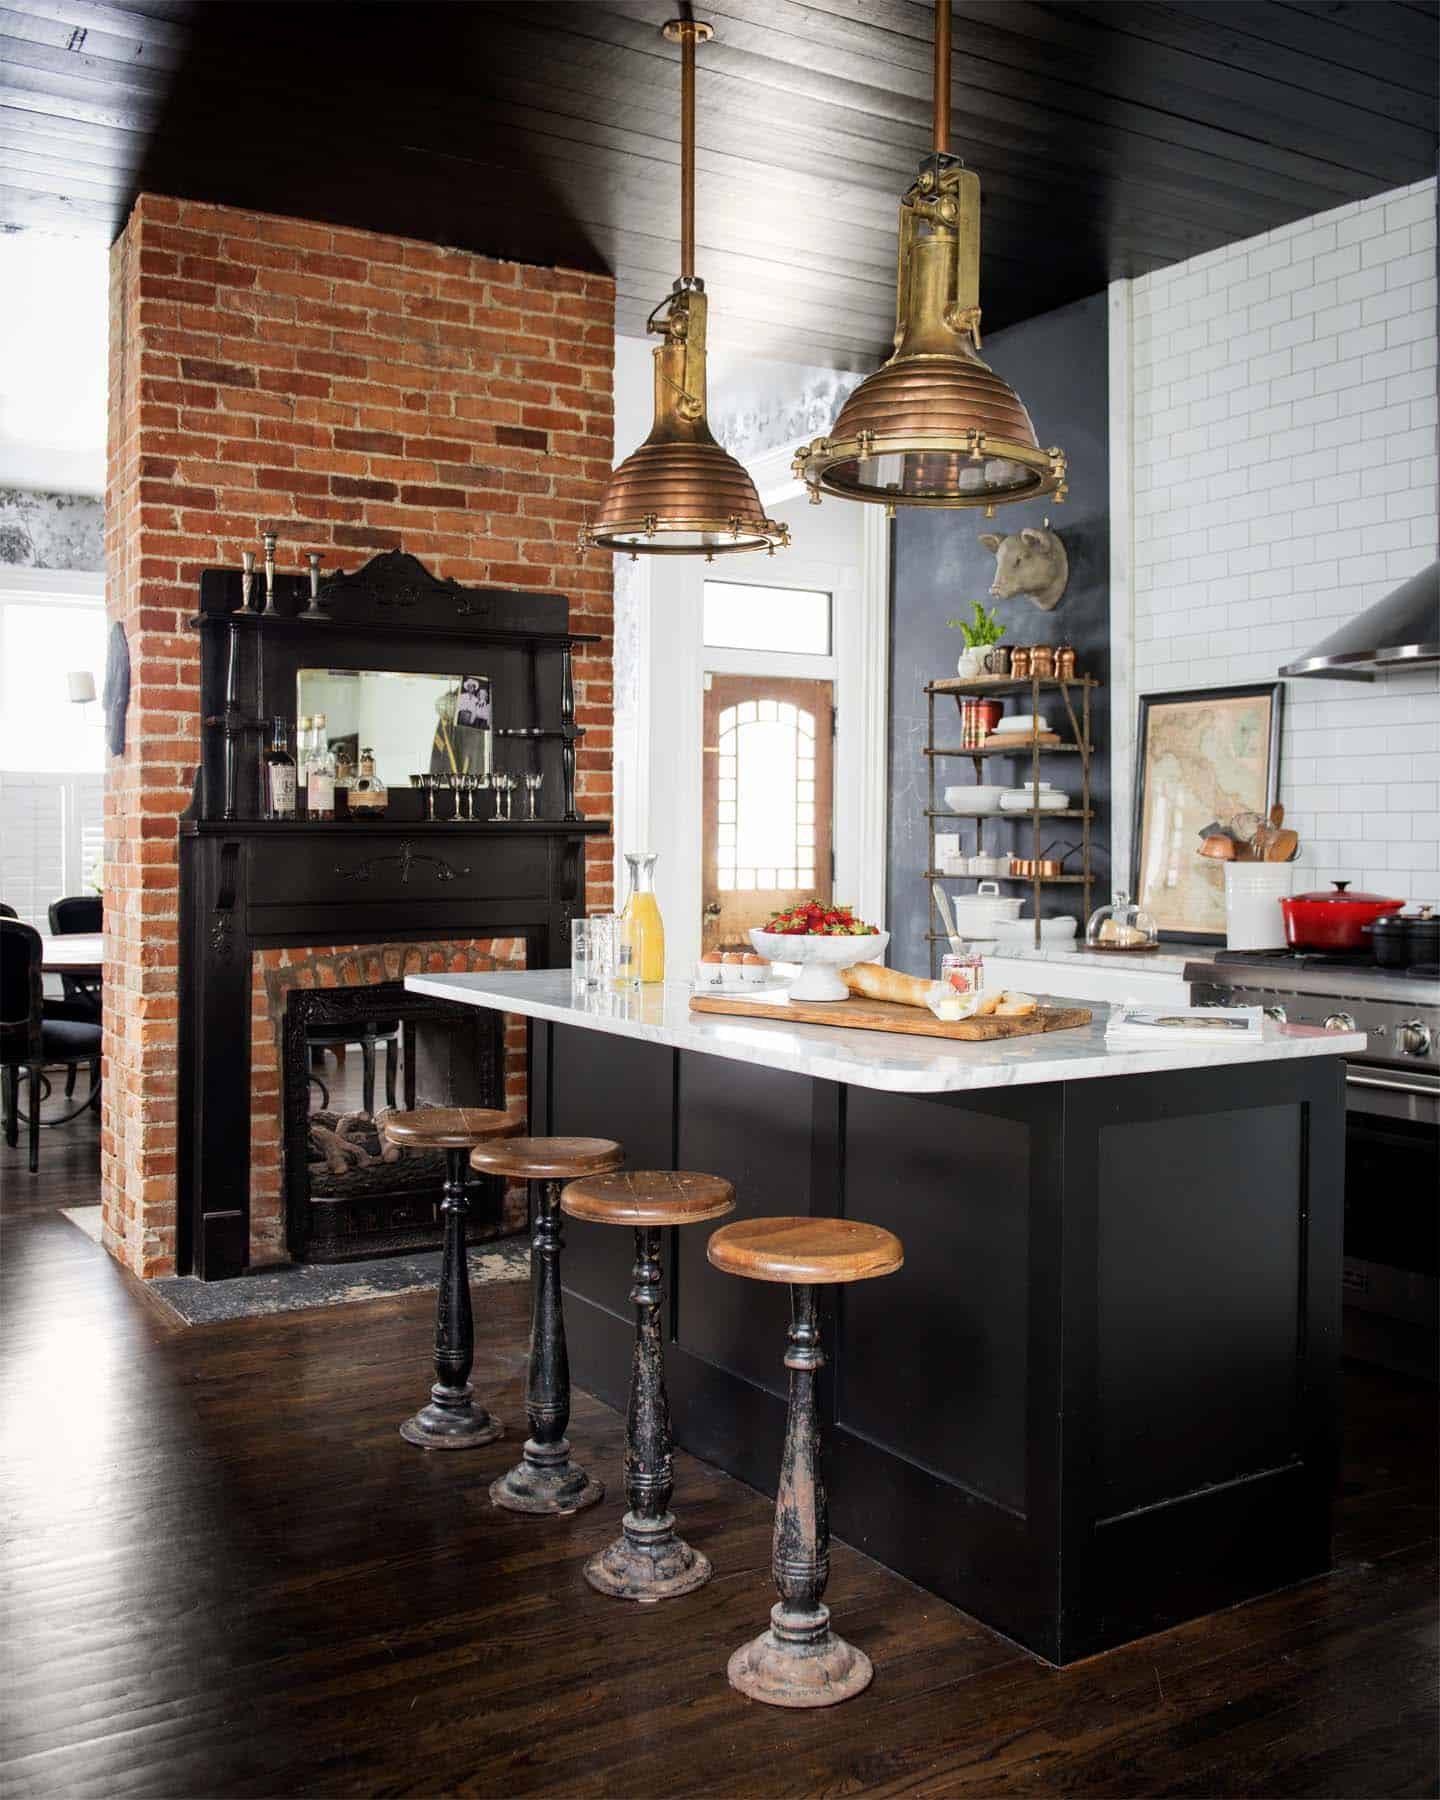 Kitchen Showcasing Cozy Fireplace-15-1 Kindesign